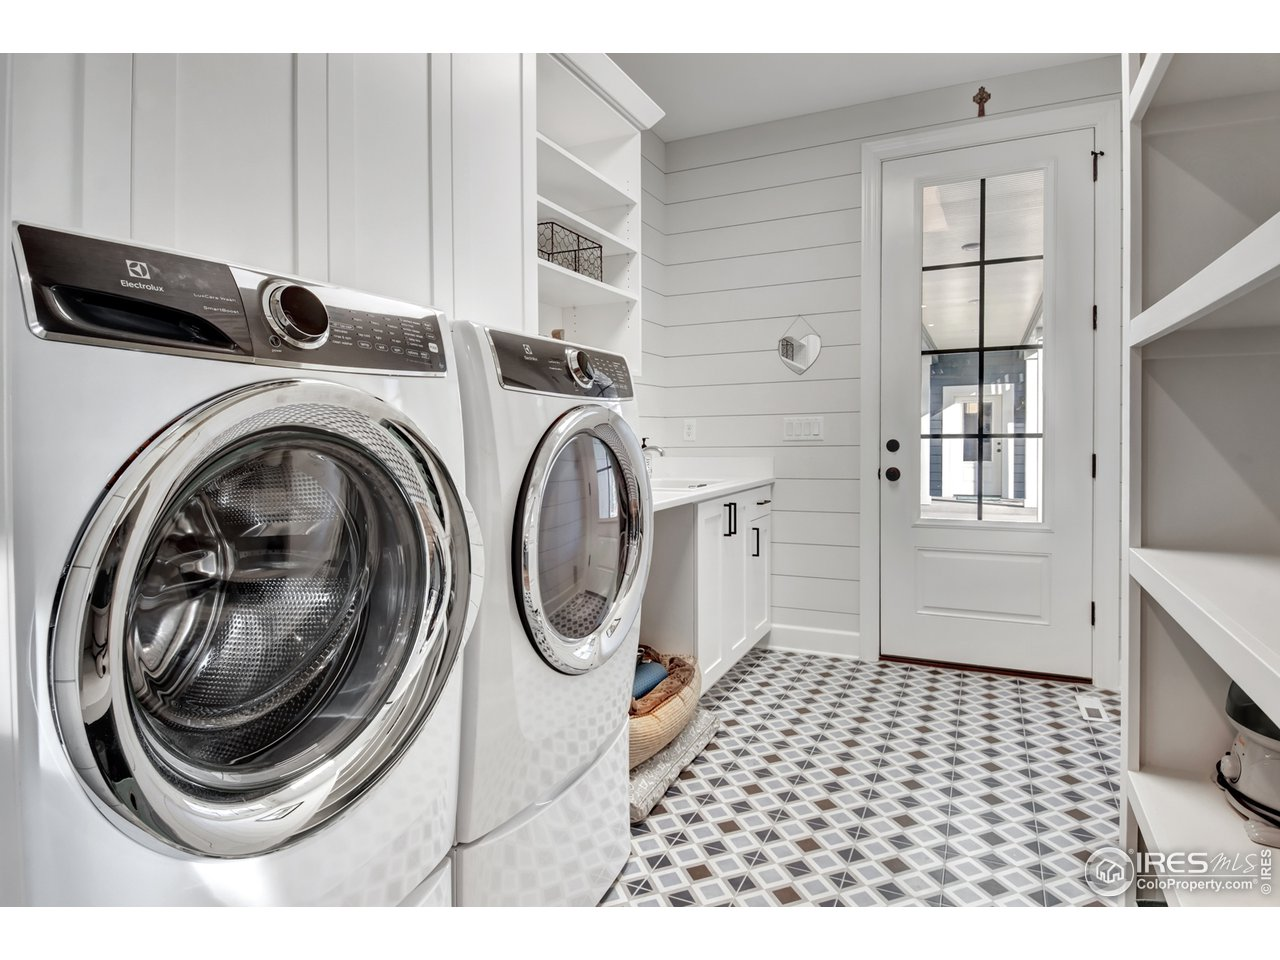 Laundry Room w/ Tub